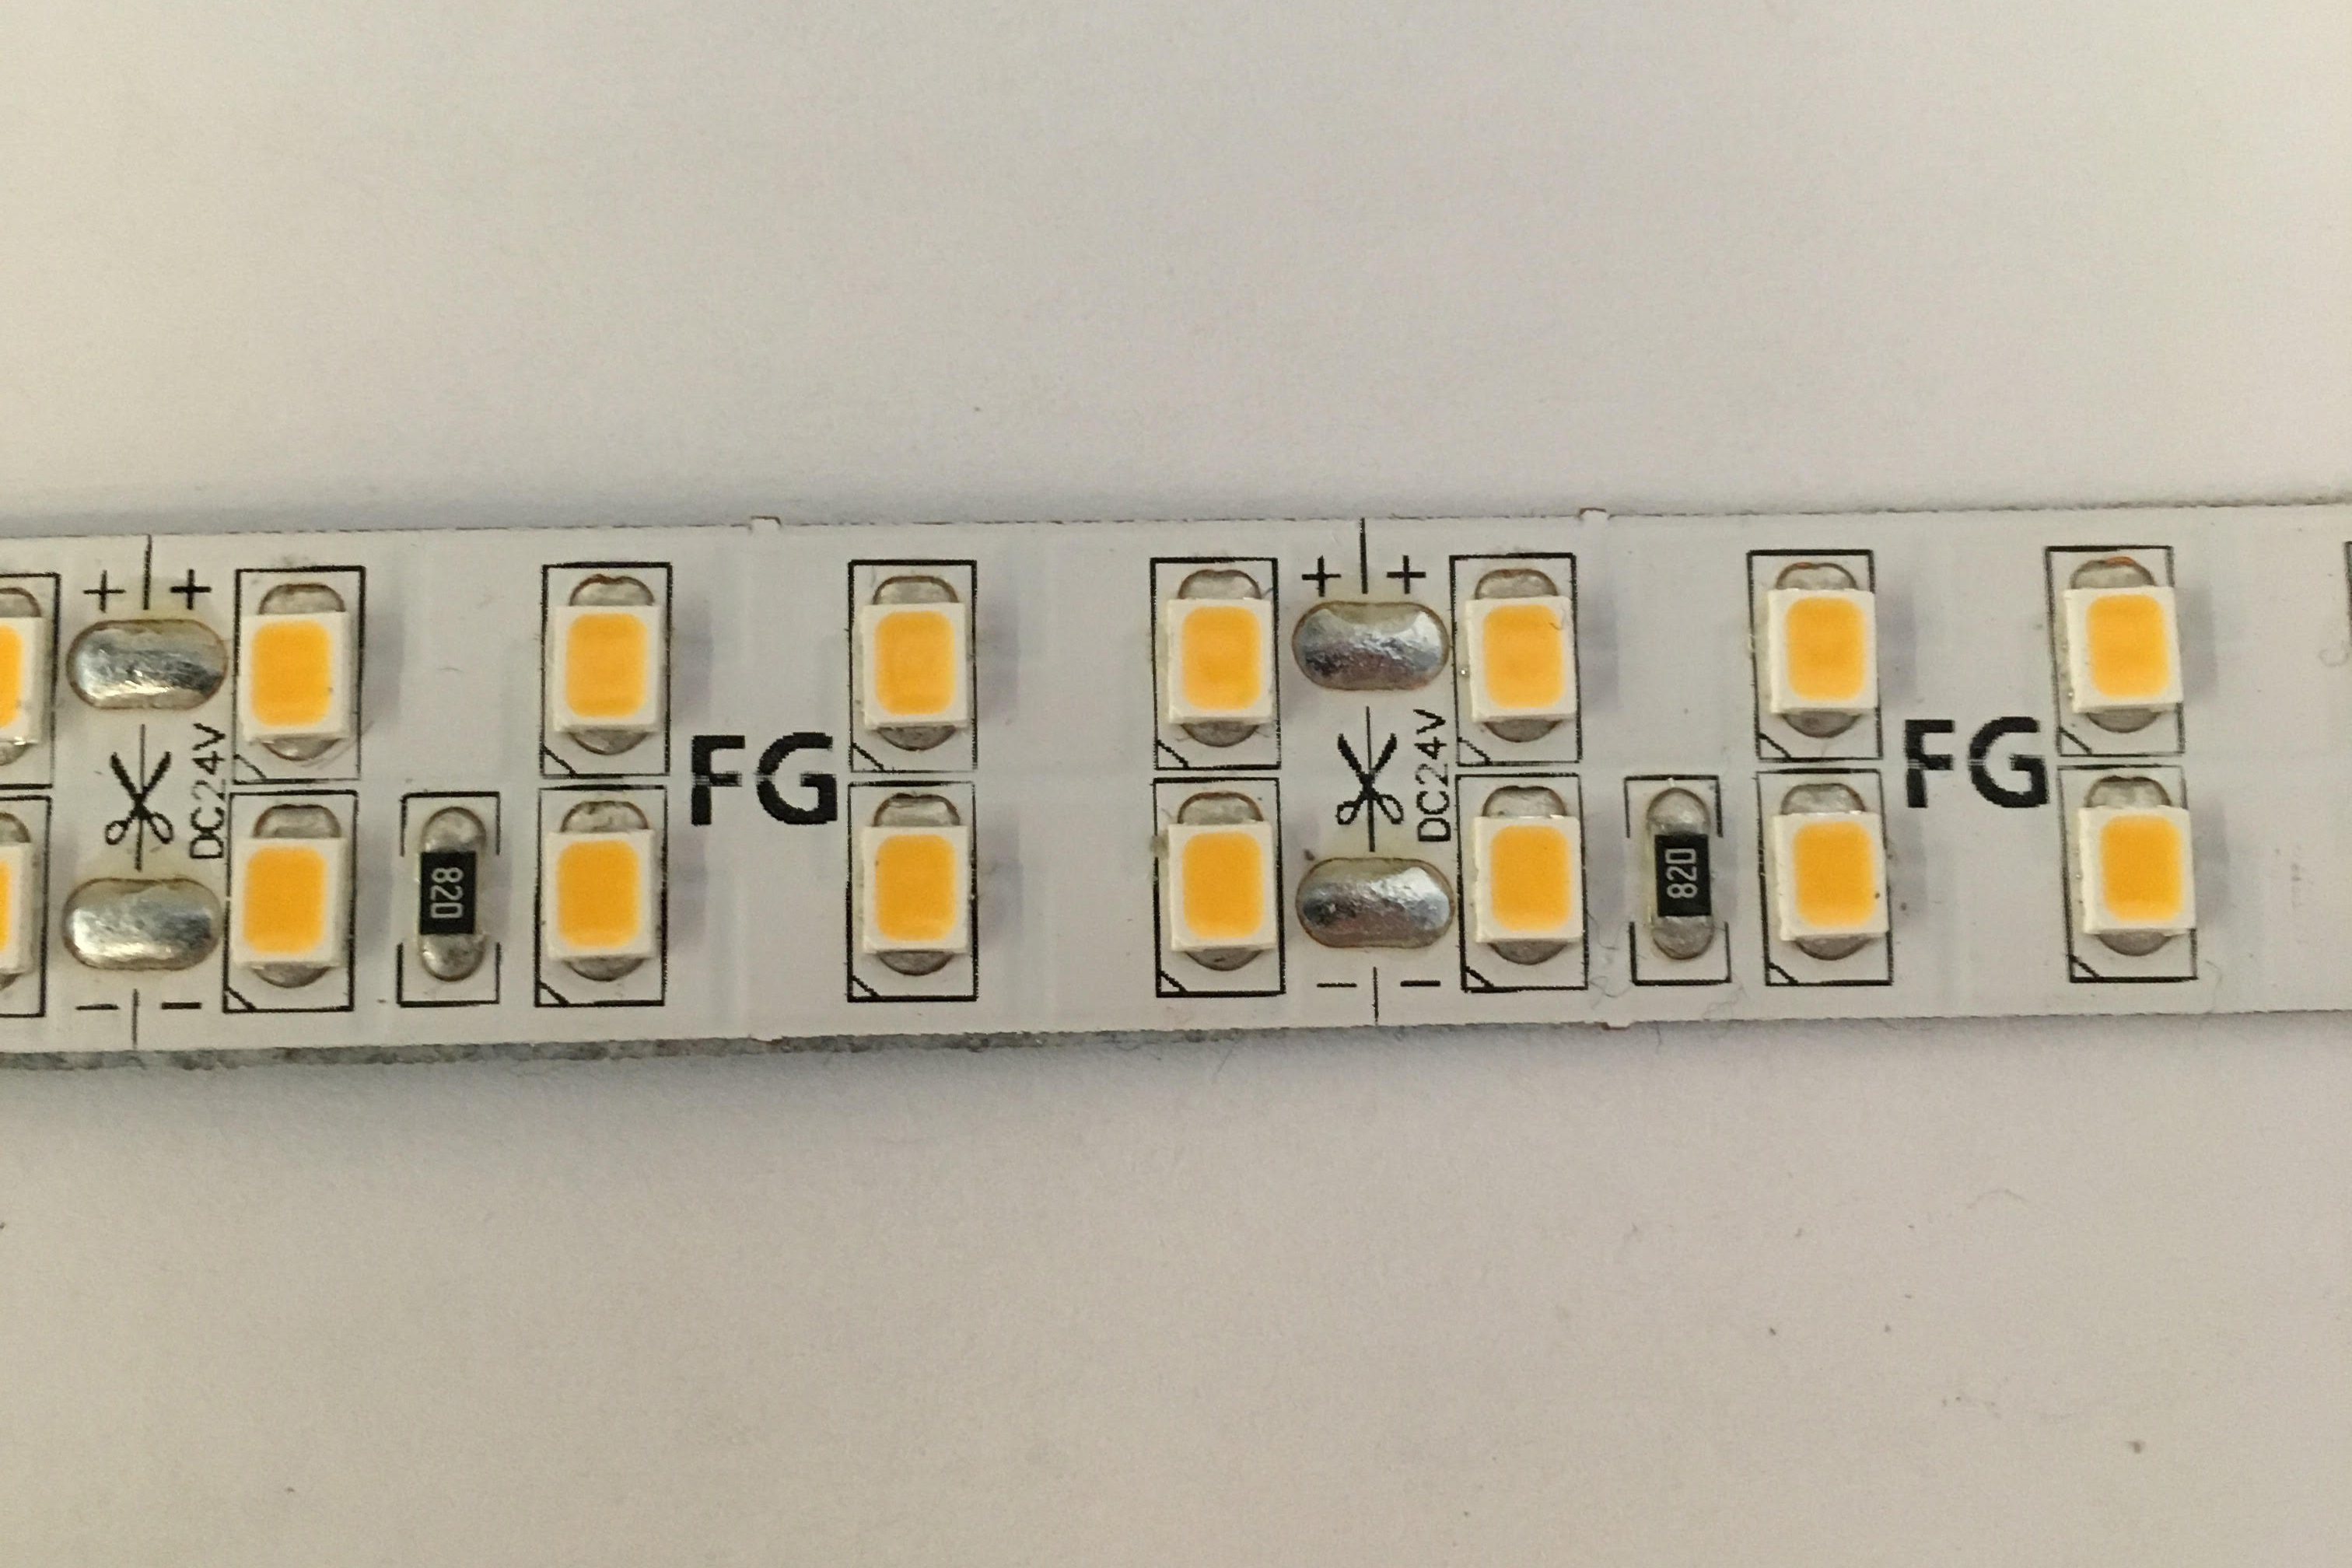 Close up on an LED diode strip. The individual LEDs appear as small orange and yellow rectangles across the white colored strip. Instructional text is printed on the strip, around the LED diodes indicating where they should be cut.